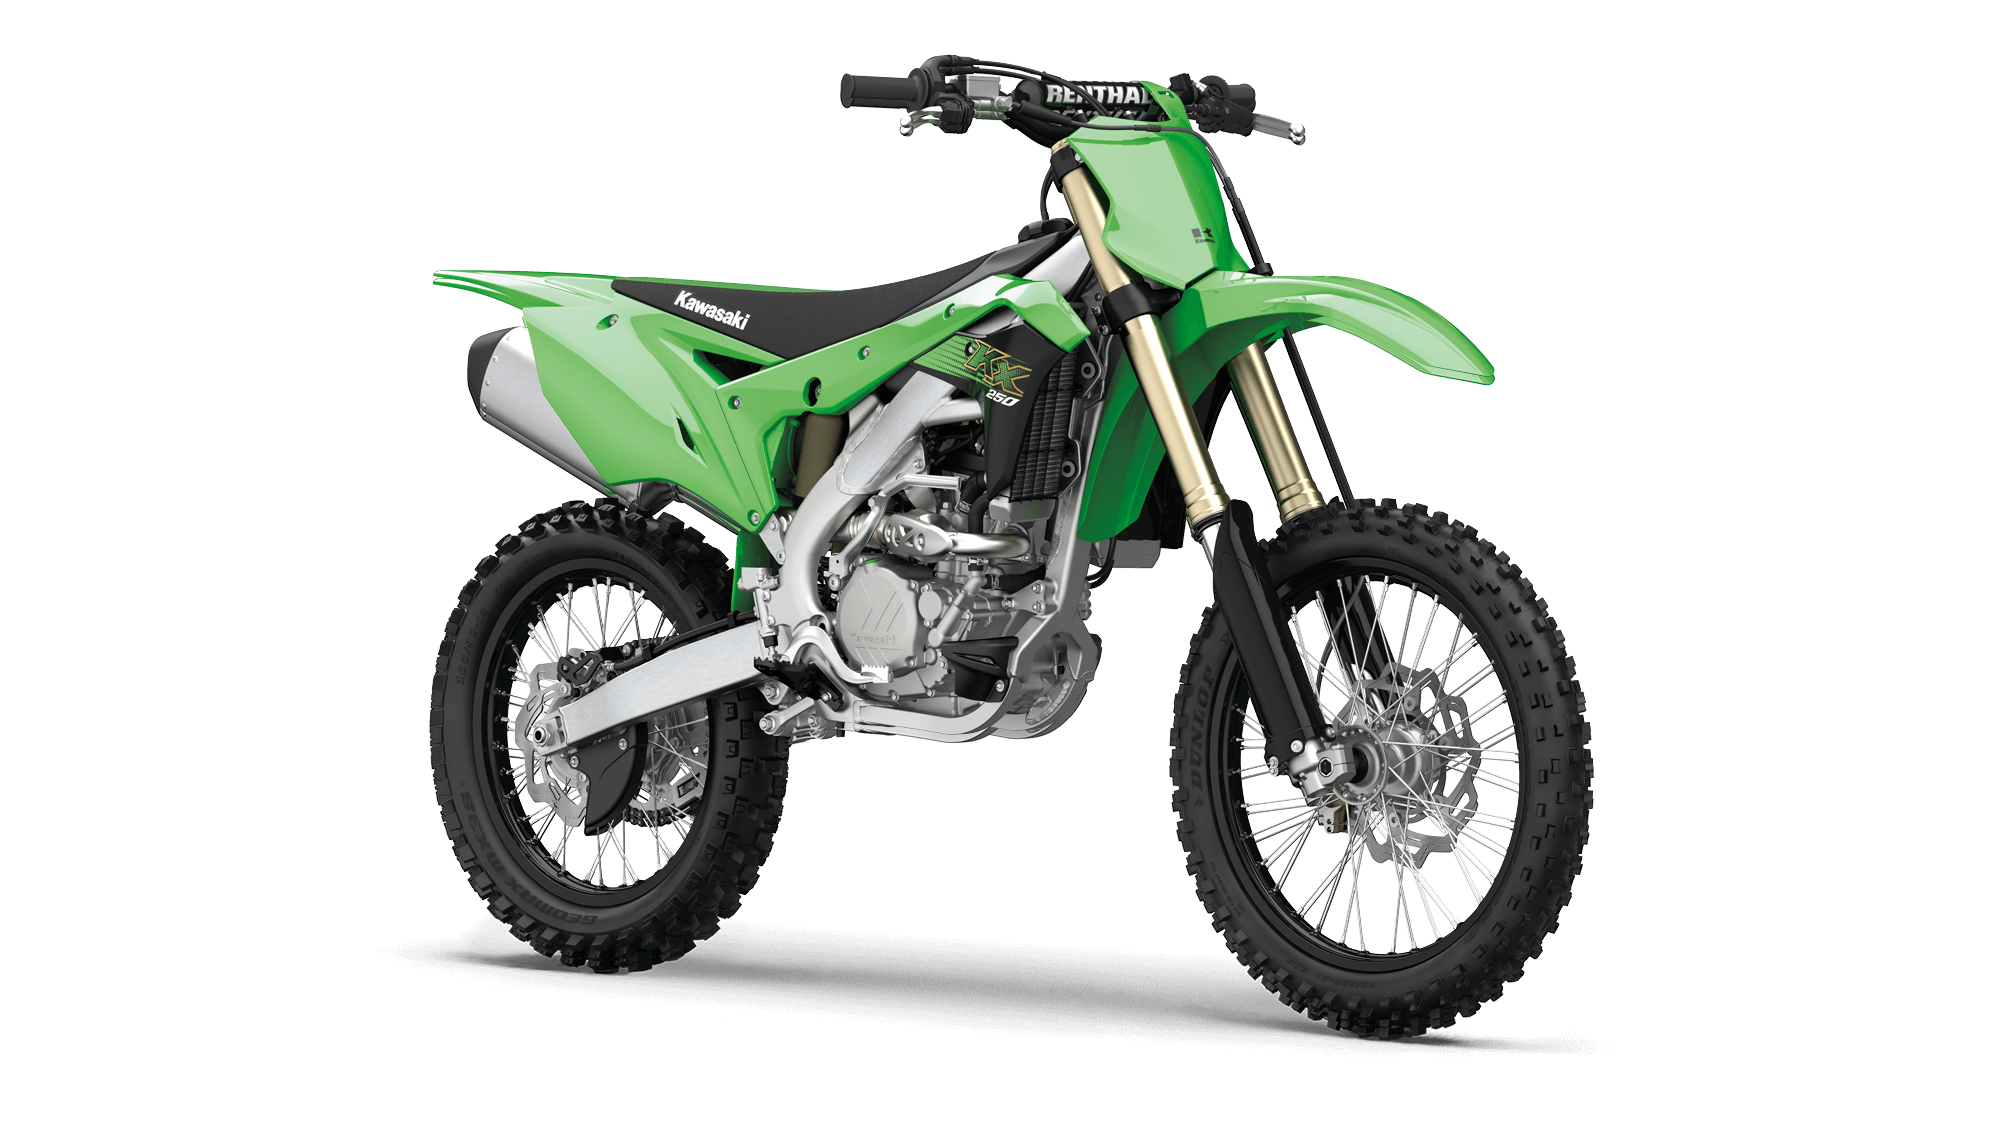 kawasaki winning vehicle